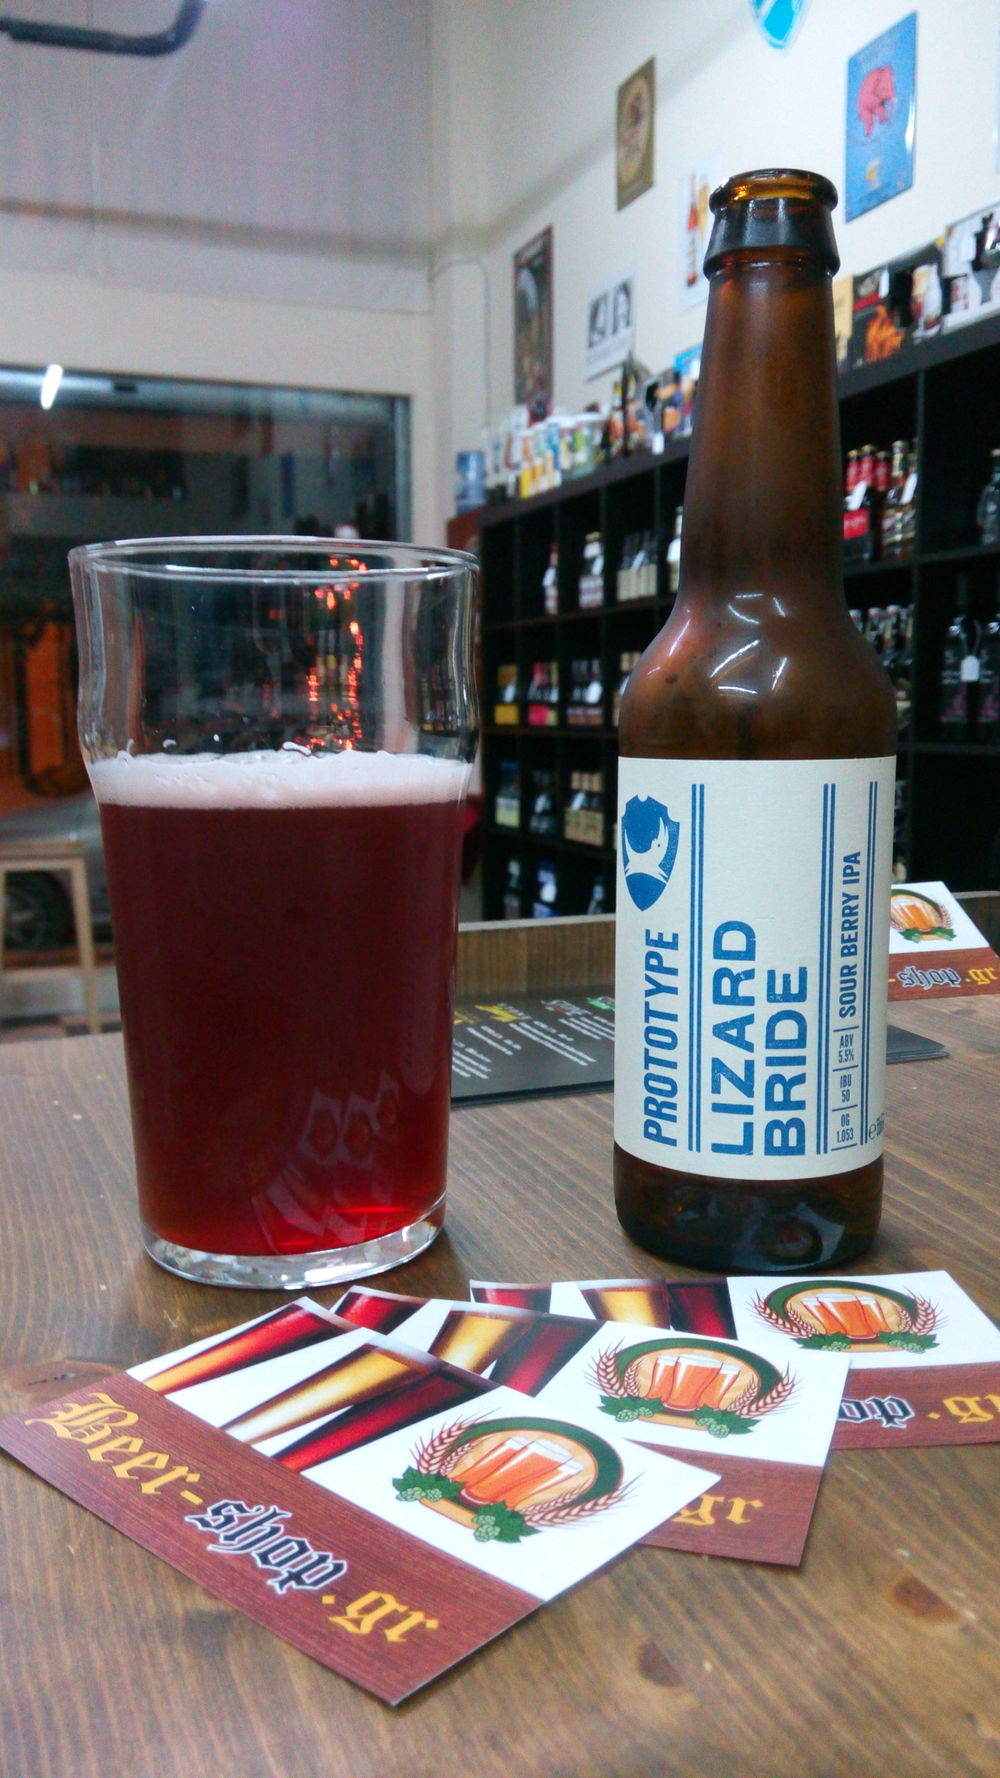 Brewdog Lizard Bride 5,5% ABV